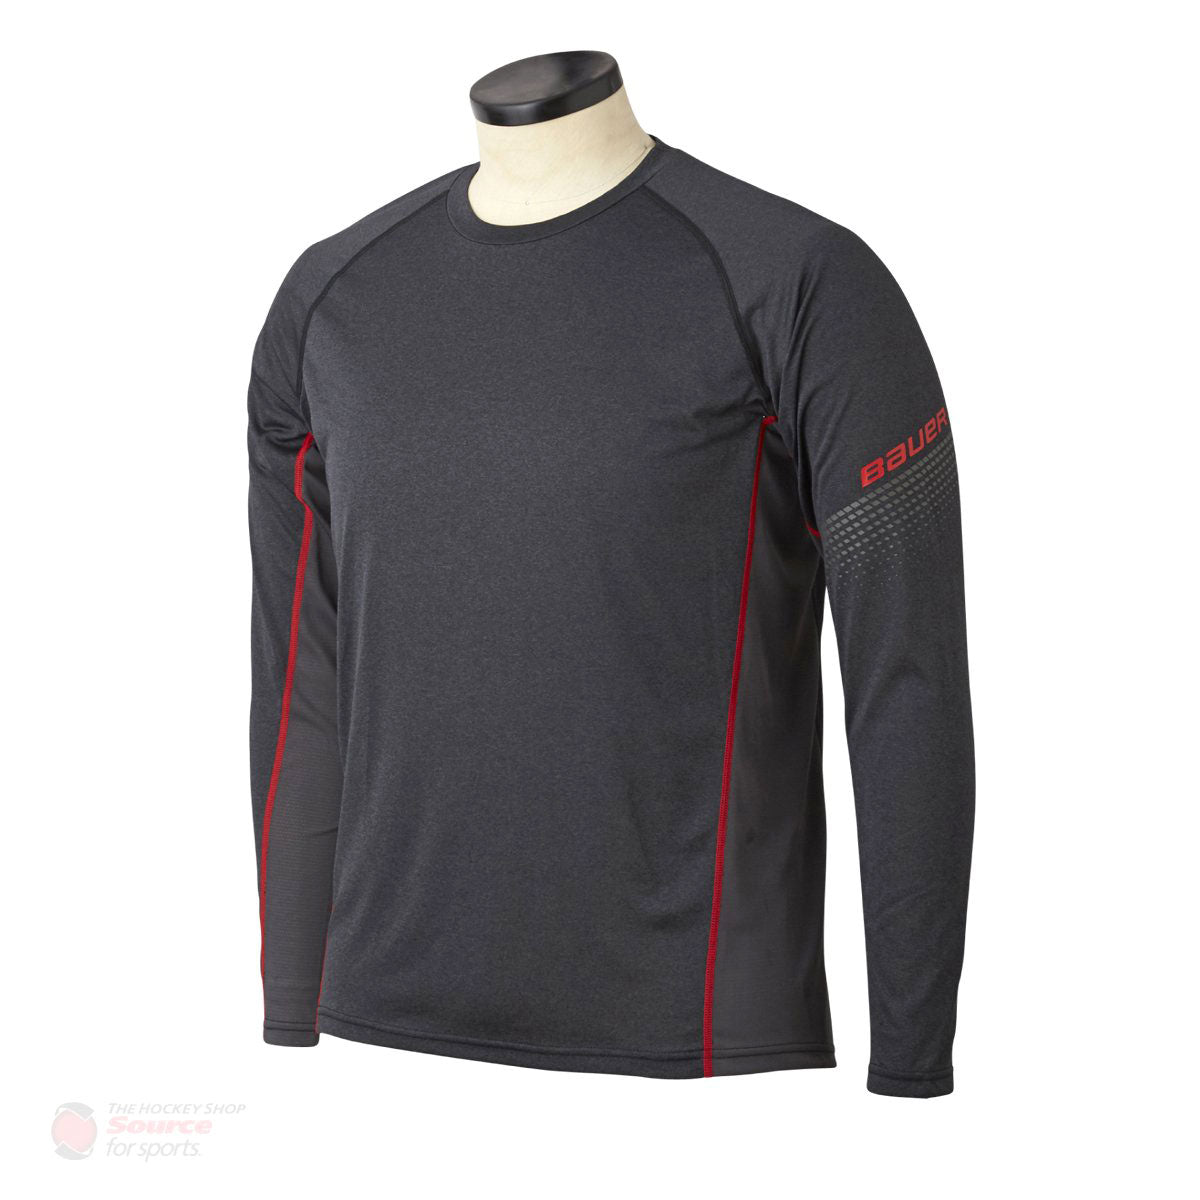 Bauer Essential Longsleeve Senior Baselayer Shirt